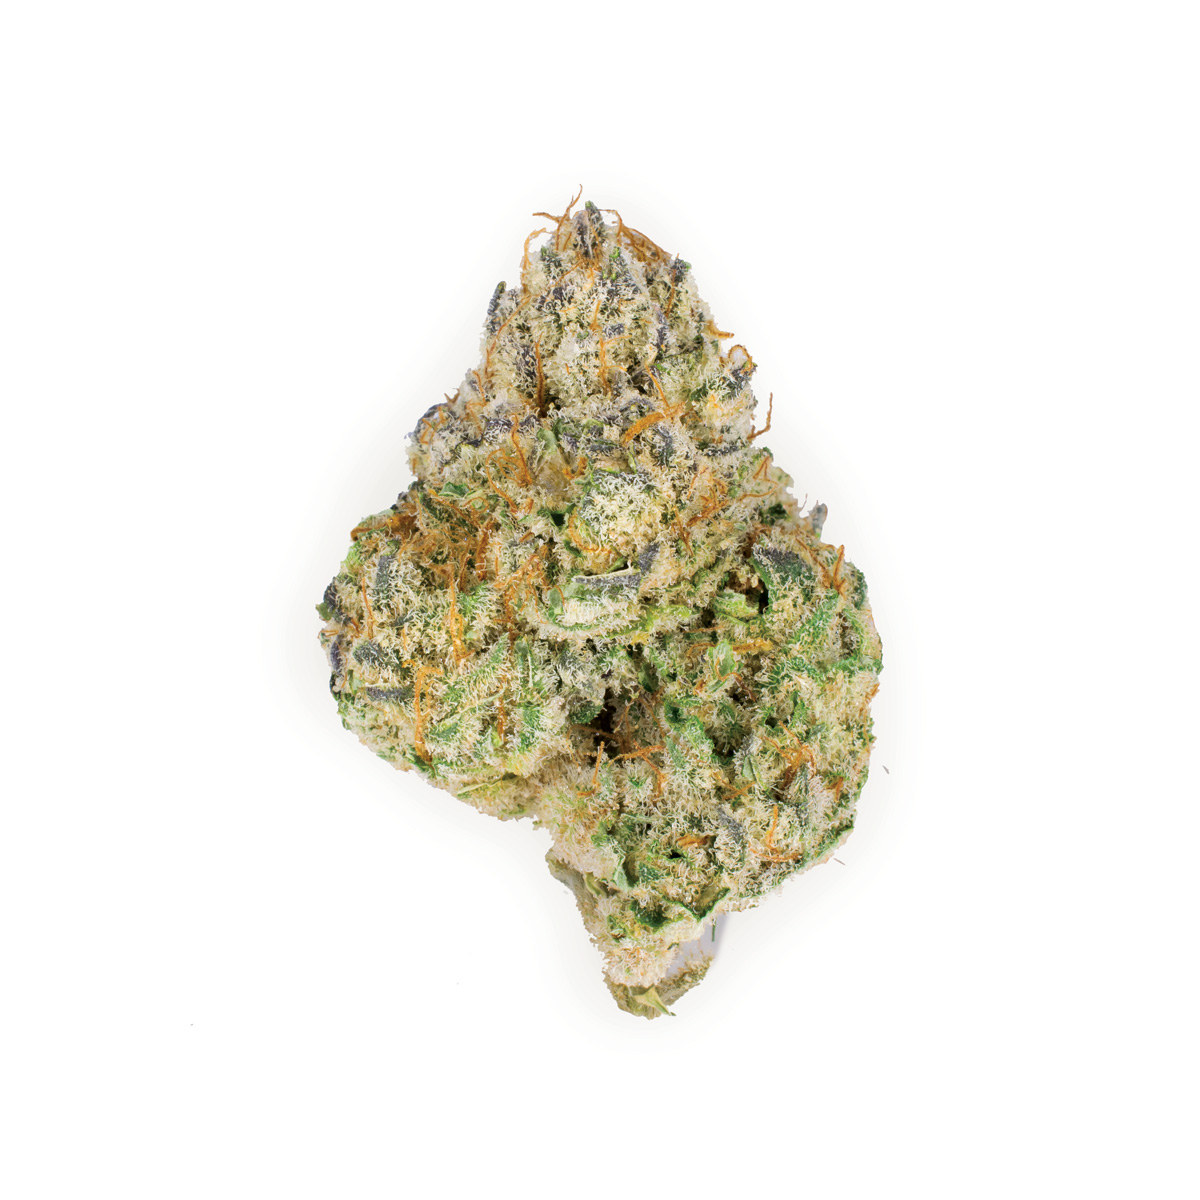 orange peels - Balanced Hybrid21.9% THC | .07 CBDOrange Peels is a unique phenotype of Symbiotic Genetics' Mimosa, a sativa-dominant cross between Clementine and Purple Punch. Orange Peels is an Ember Valley original intended for limited release in collaboration with Cookies, but its popularity quickly made it a staple of our menu. Its unique strain is a near perfect balance of Sativa and Indica, using sticky buds with strong orange-citrus aroma that make it perfect for nearly any occasion.